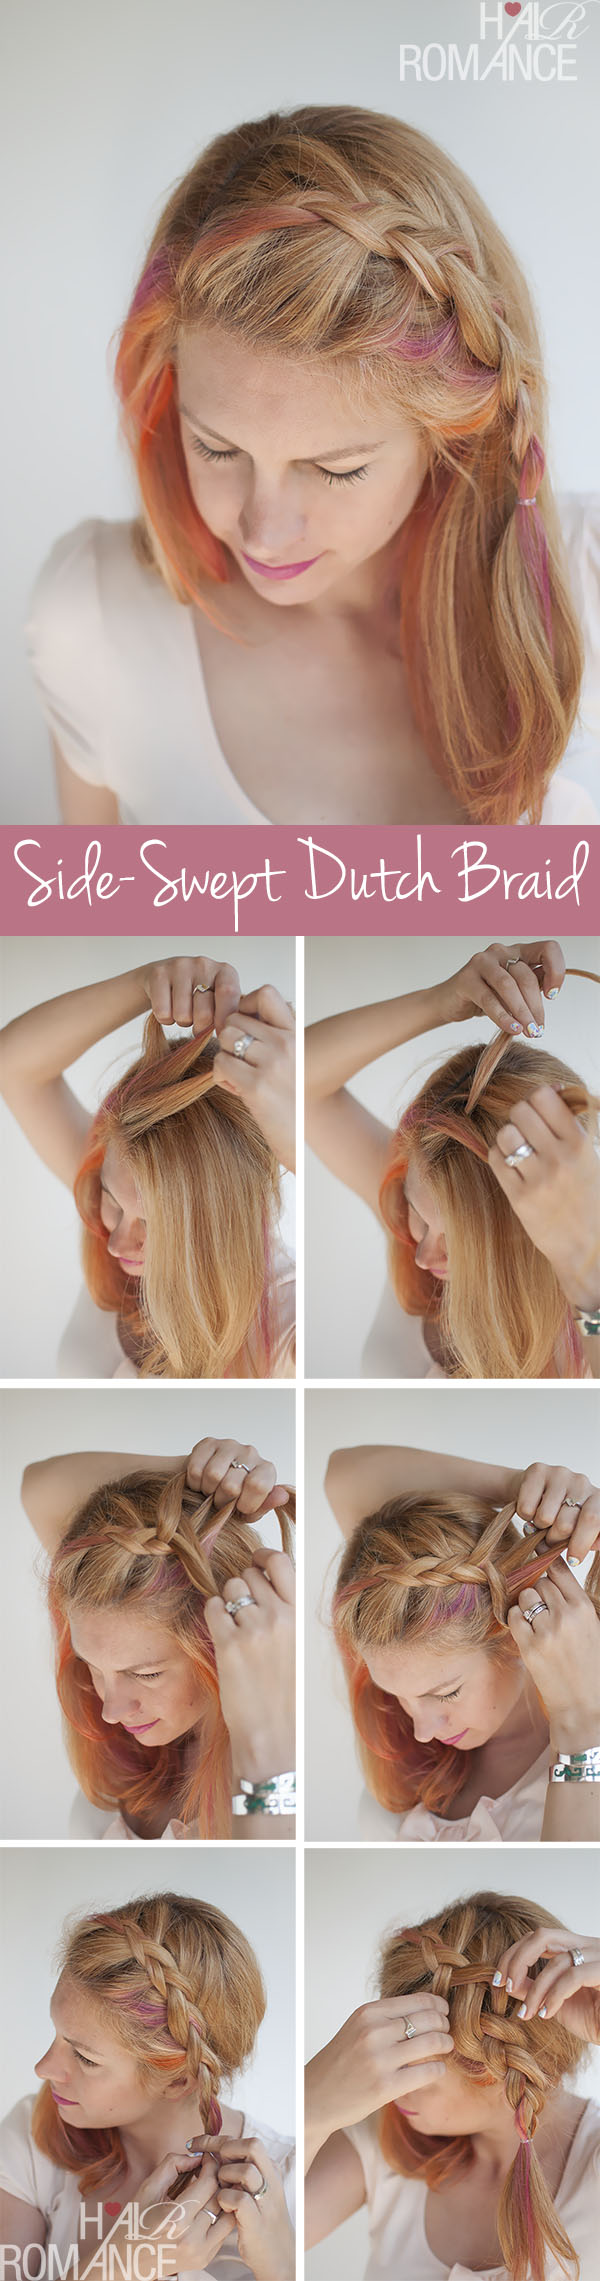 Hair Romance - Side-swept Dutch braid hairstyle tutorial